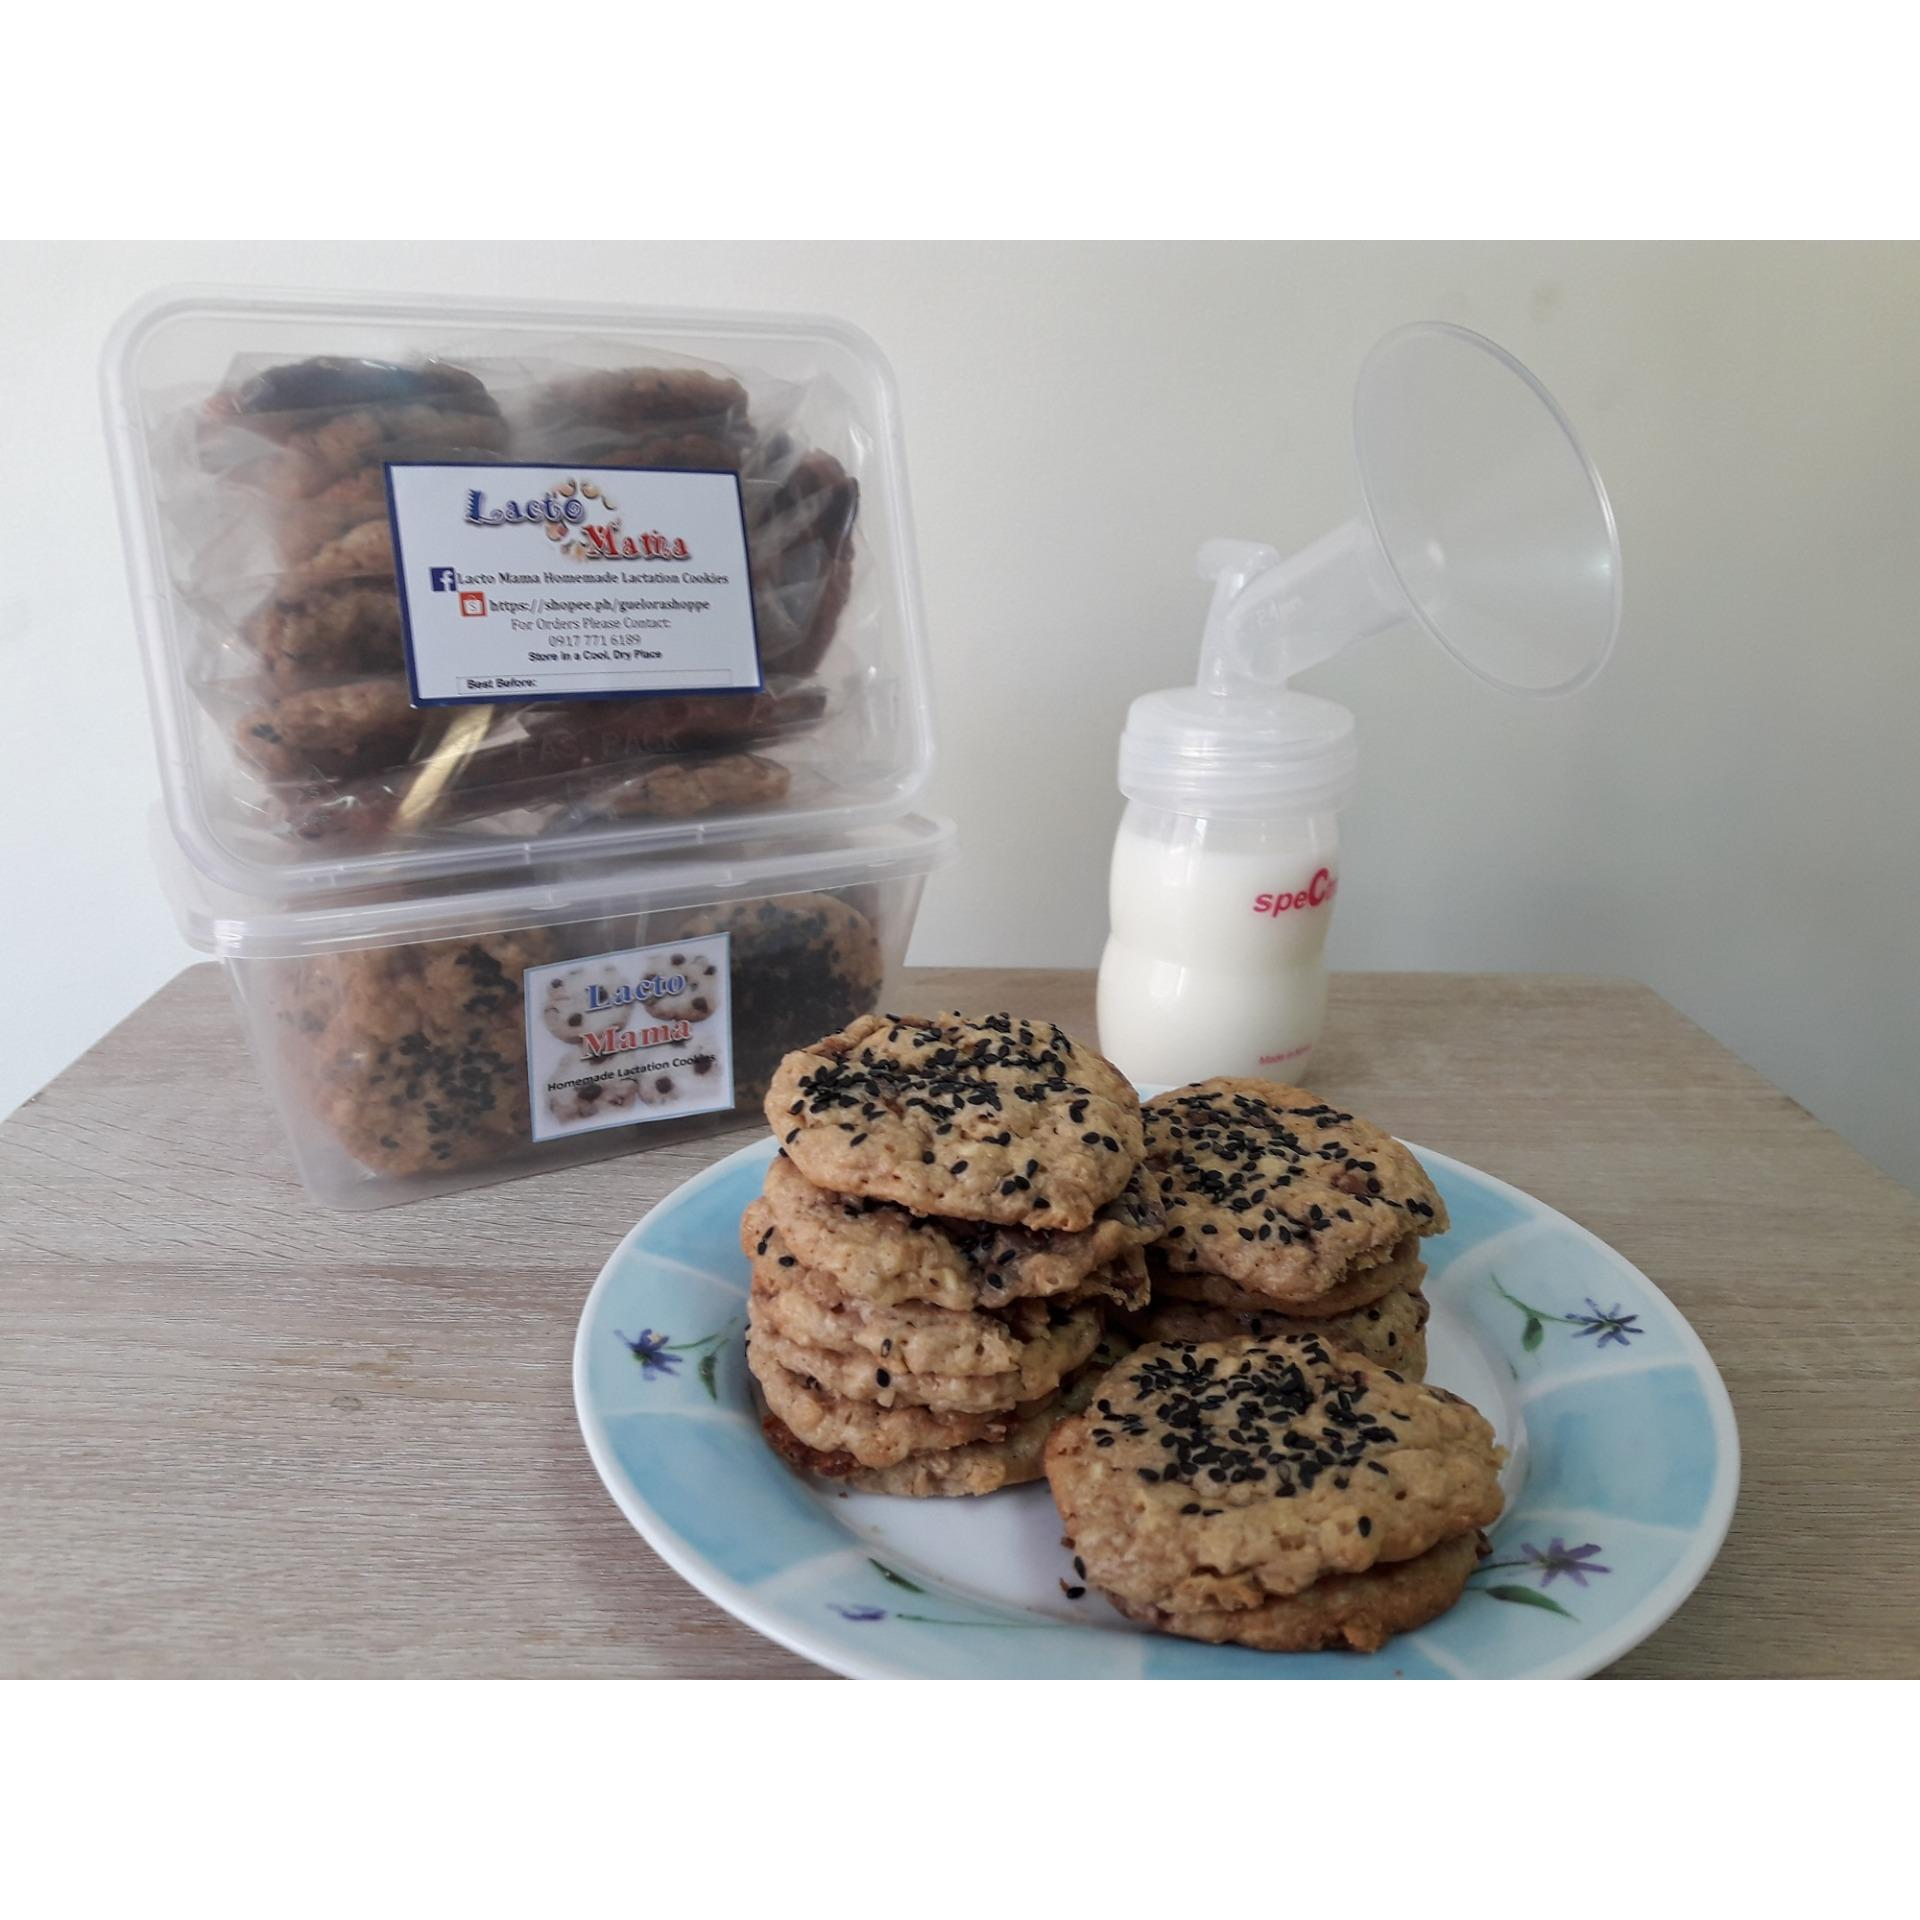 Cookies Brands Cookie Chips On Sale Prices Set Reviews In Bengbeng Drink 80 Sachet Lactation With Black Sesame Seeds Starter Pack